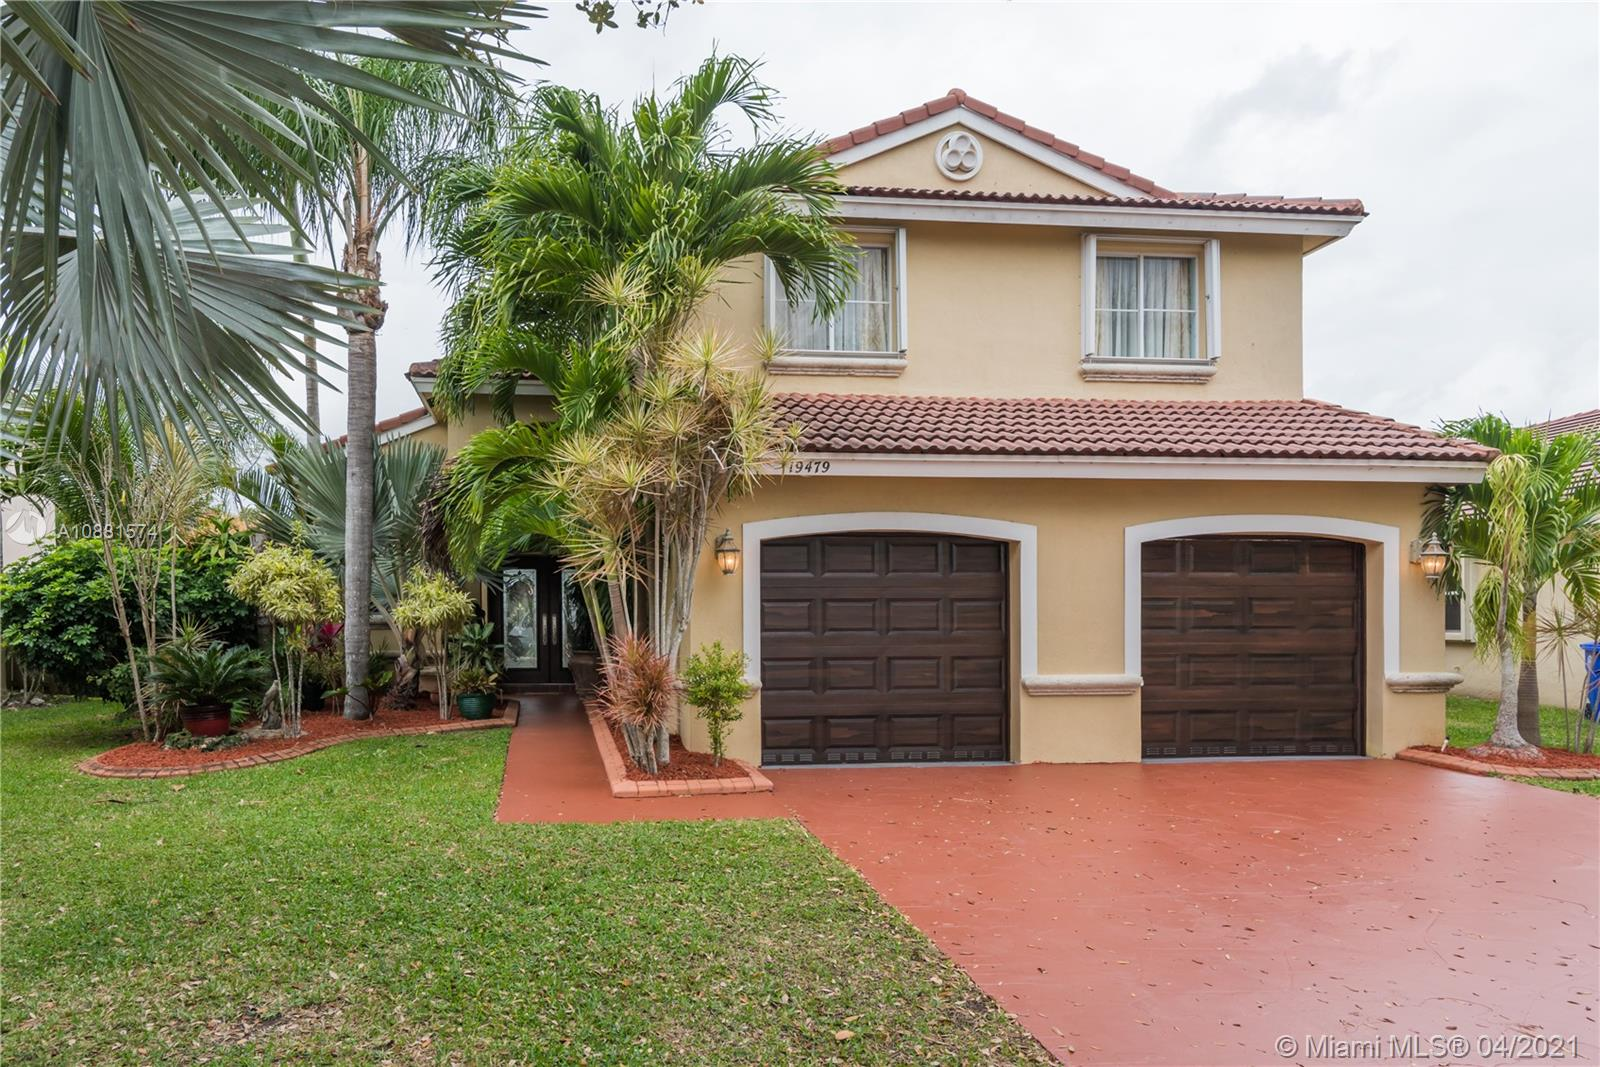 Property for sale at 19479 NW 24th Pl, Pembroke Pines,  Florida 33029